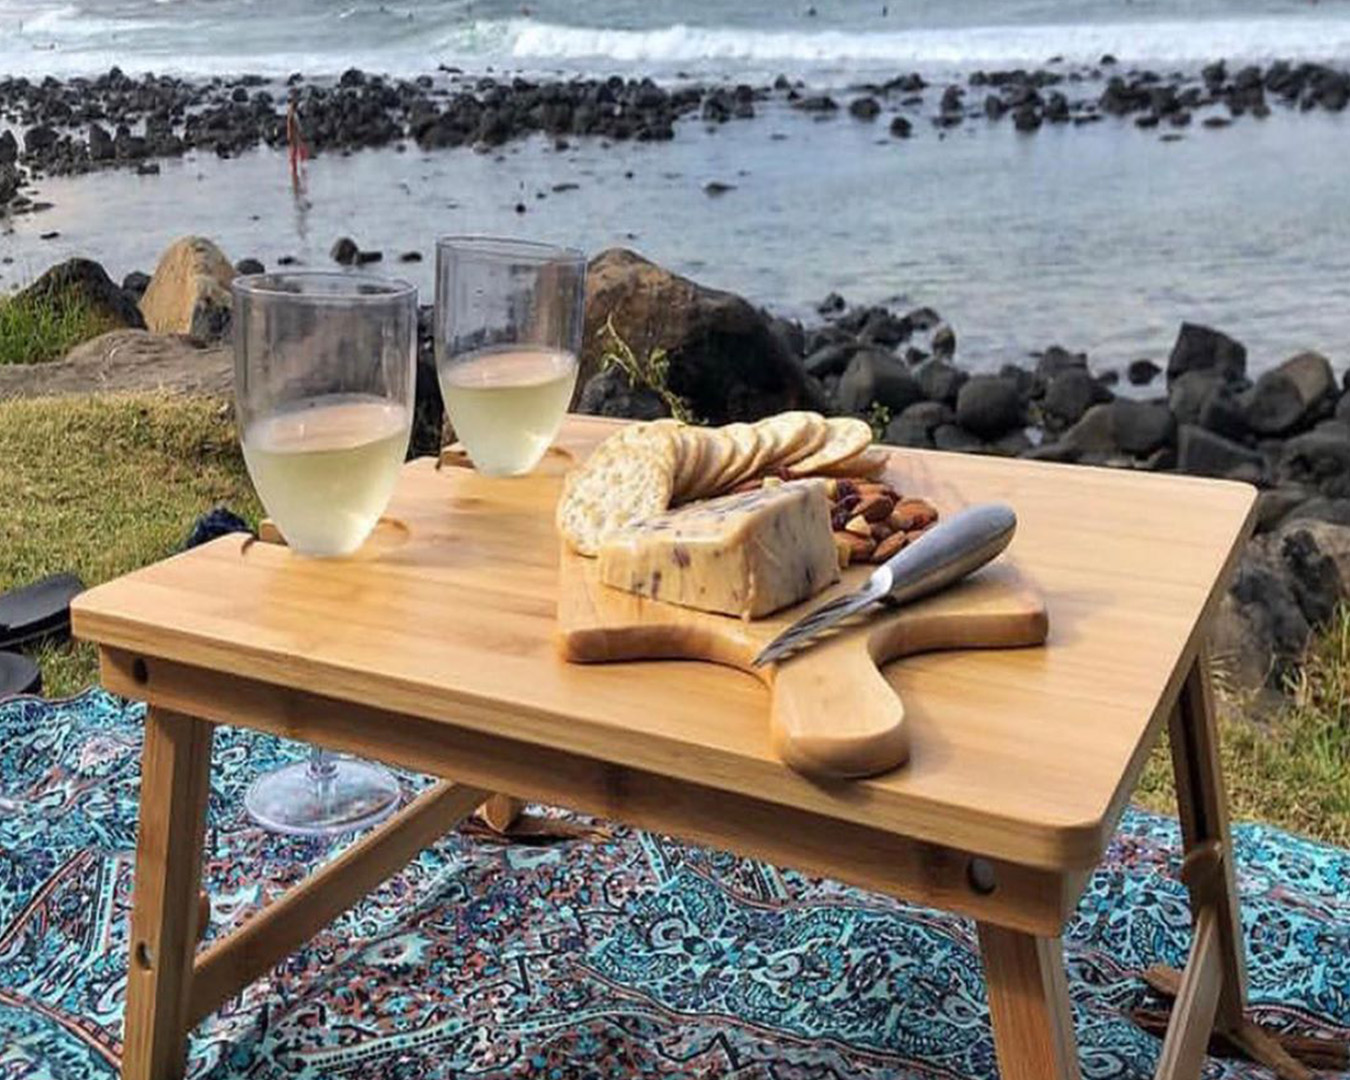 a small wooden picnic table with cheese, crackers and wine on it, sits next to the ocean.